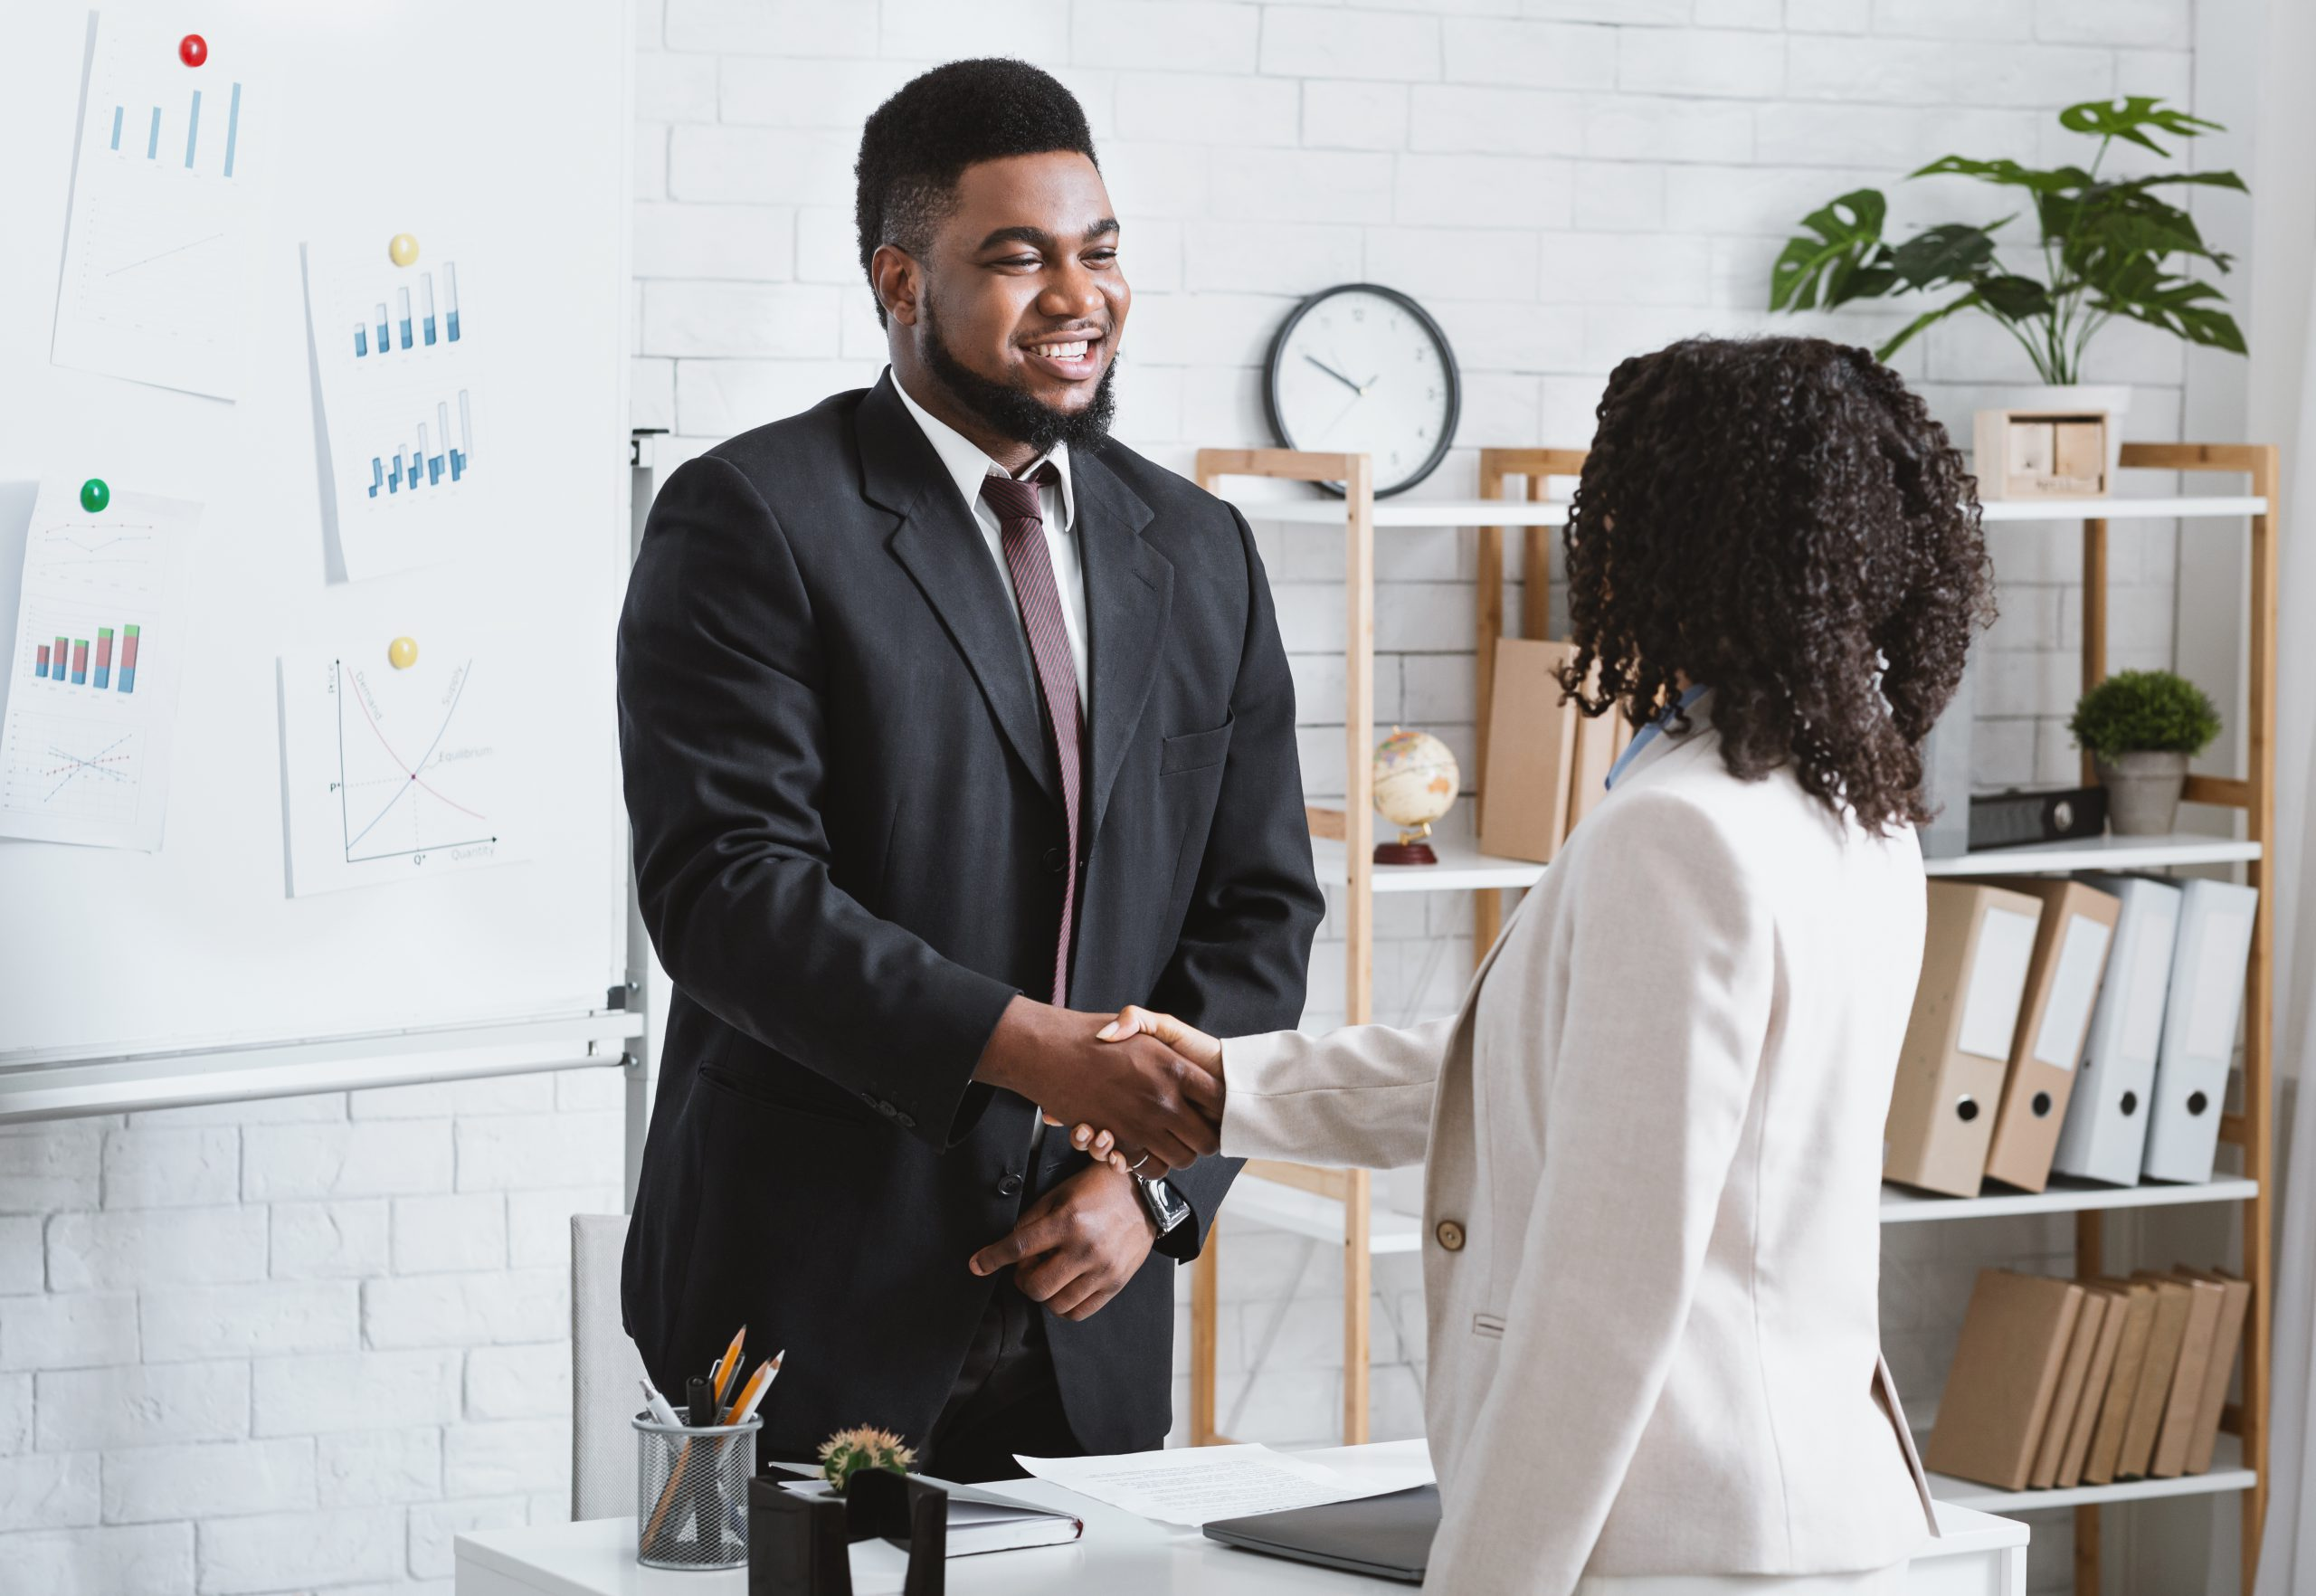 Joyful HR manager shaking hands with millennial applicant at job interview at company office